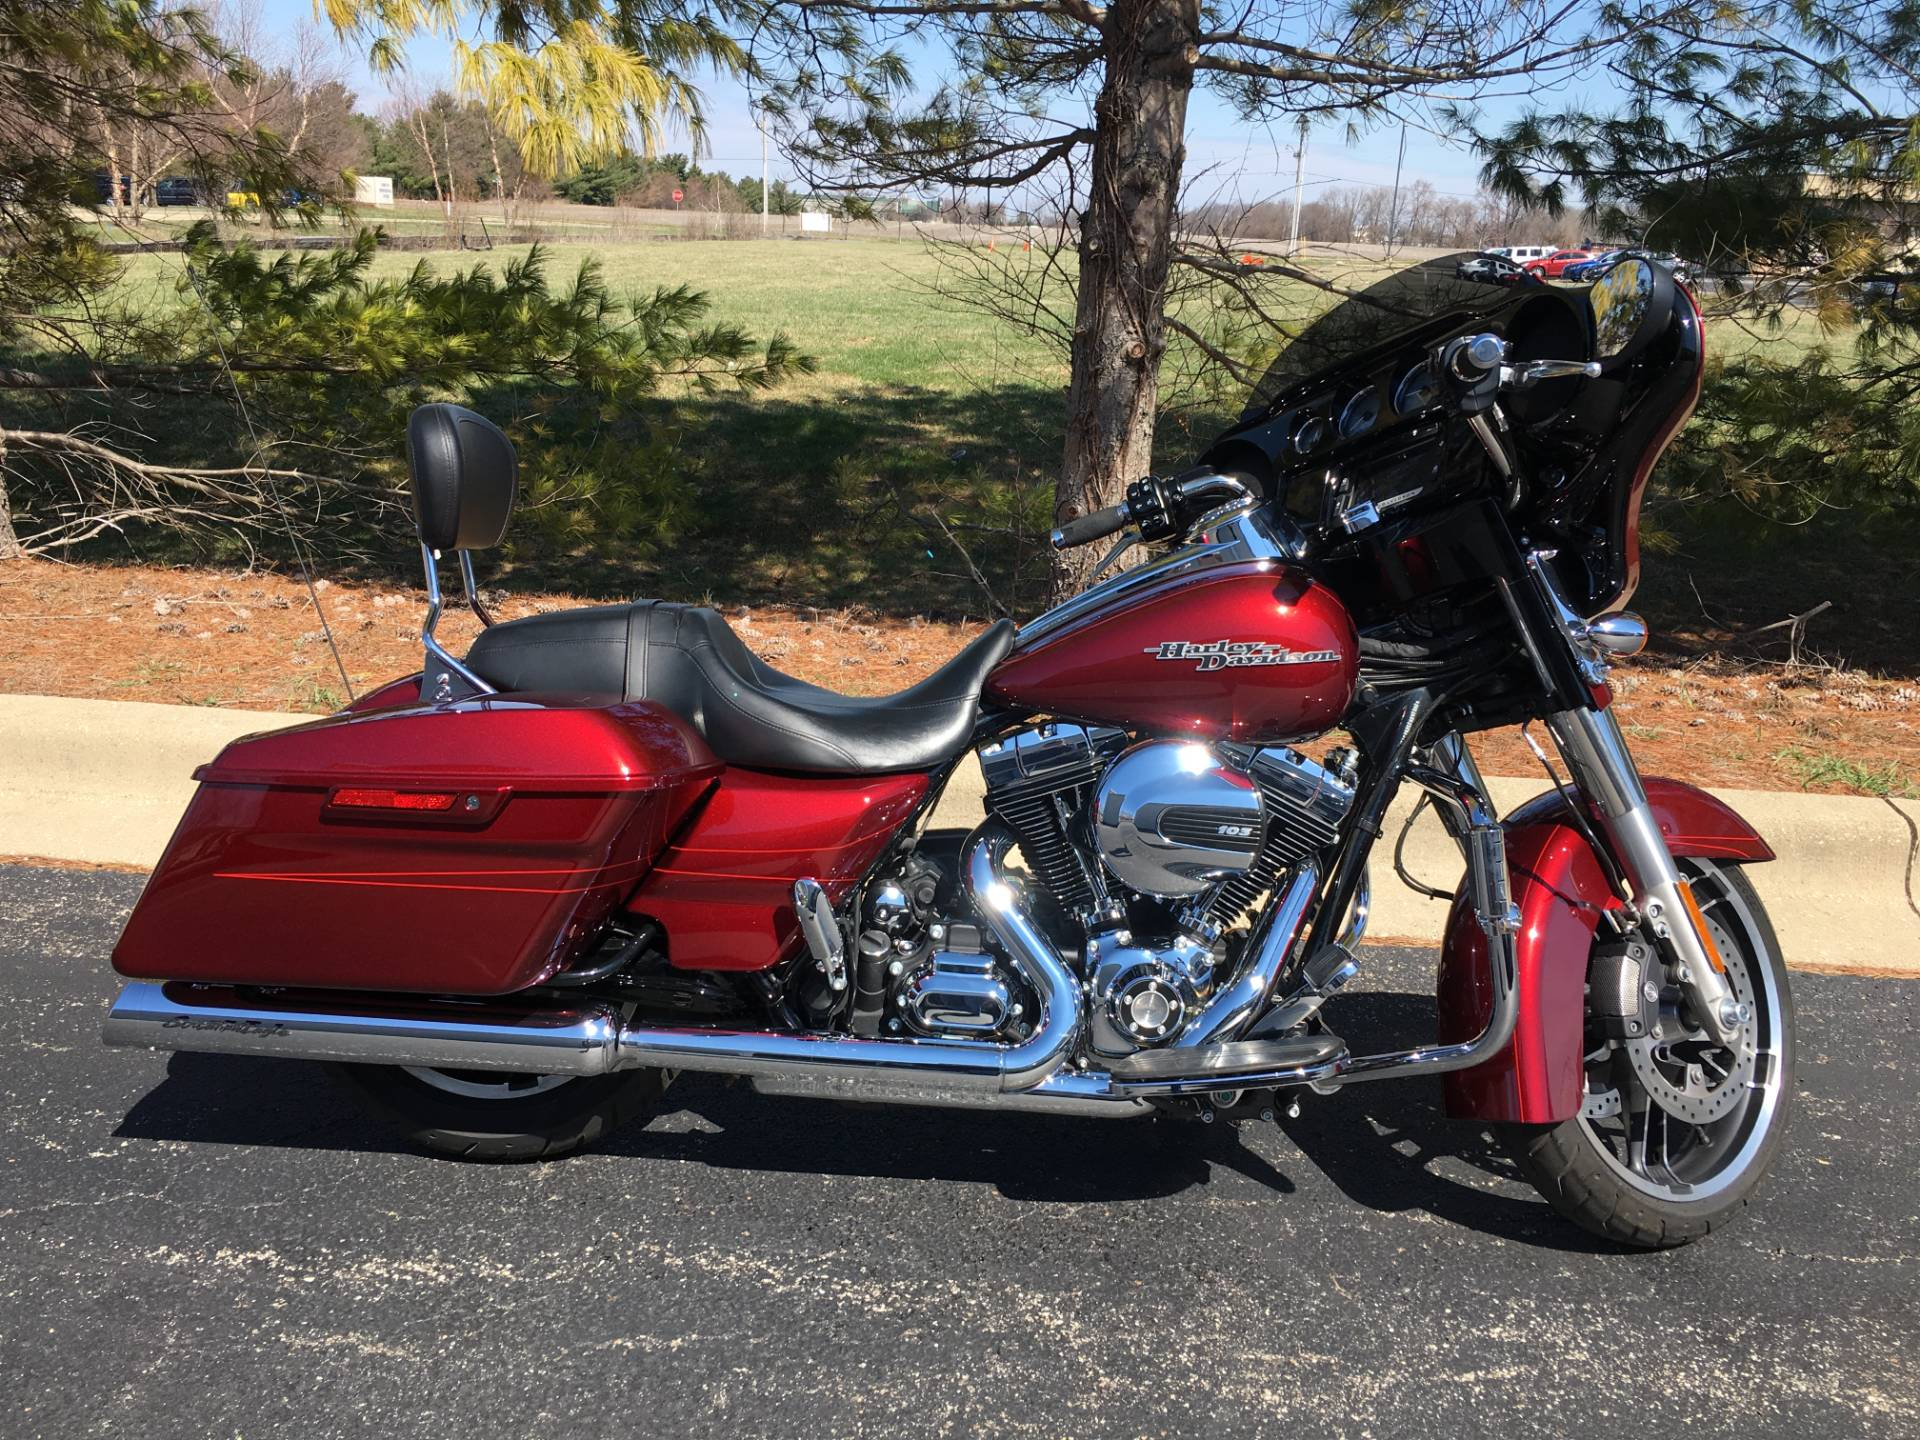 2016 Harley-Davidson Street Glide Special in Forsyth, Illinois - Photo 1